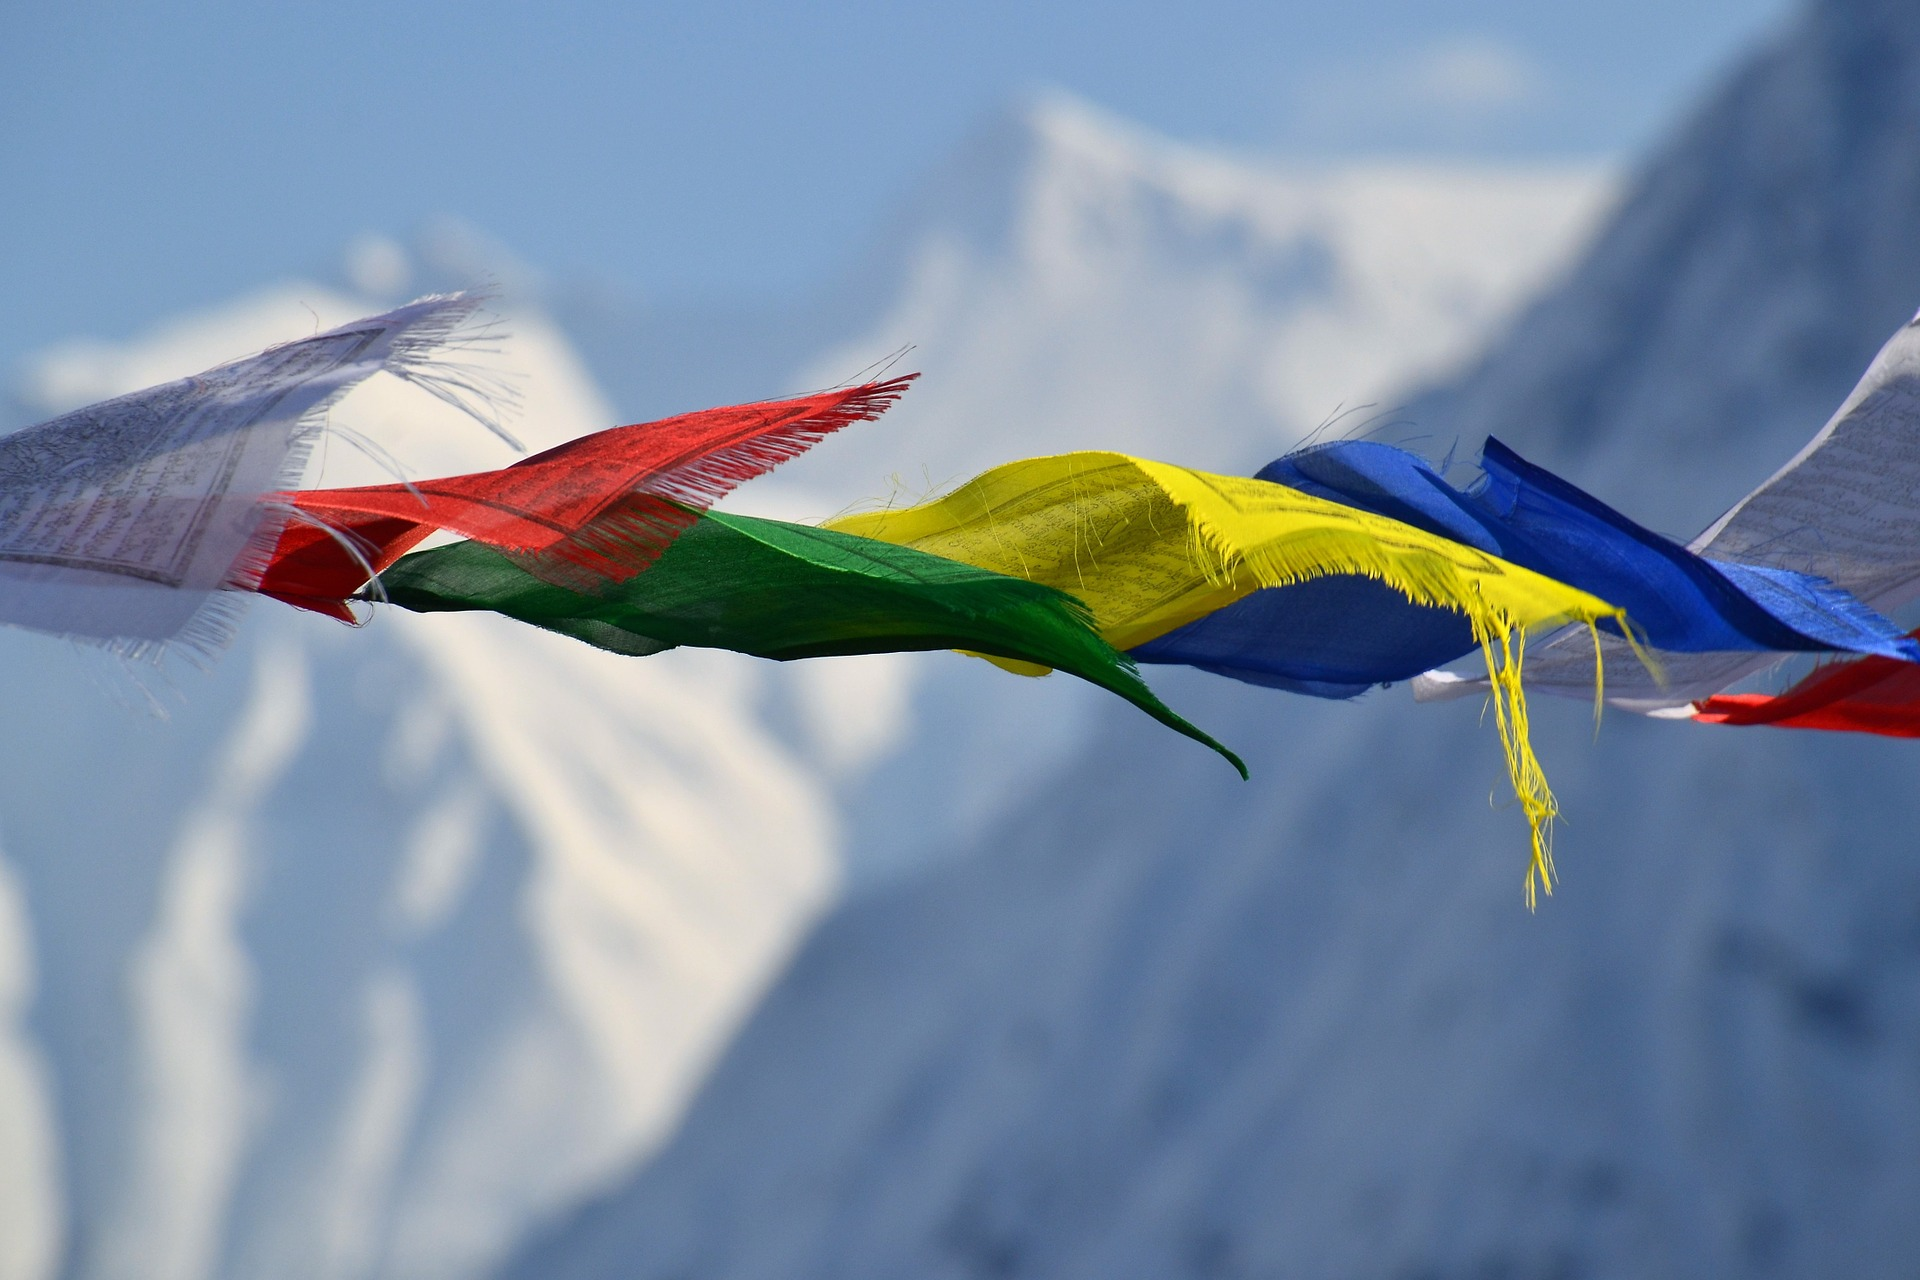 You can expect to see these Tibetan prayer flags in Nepal.